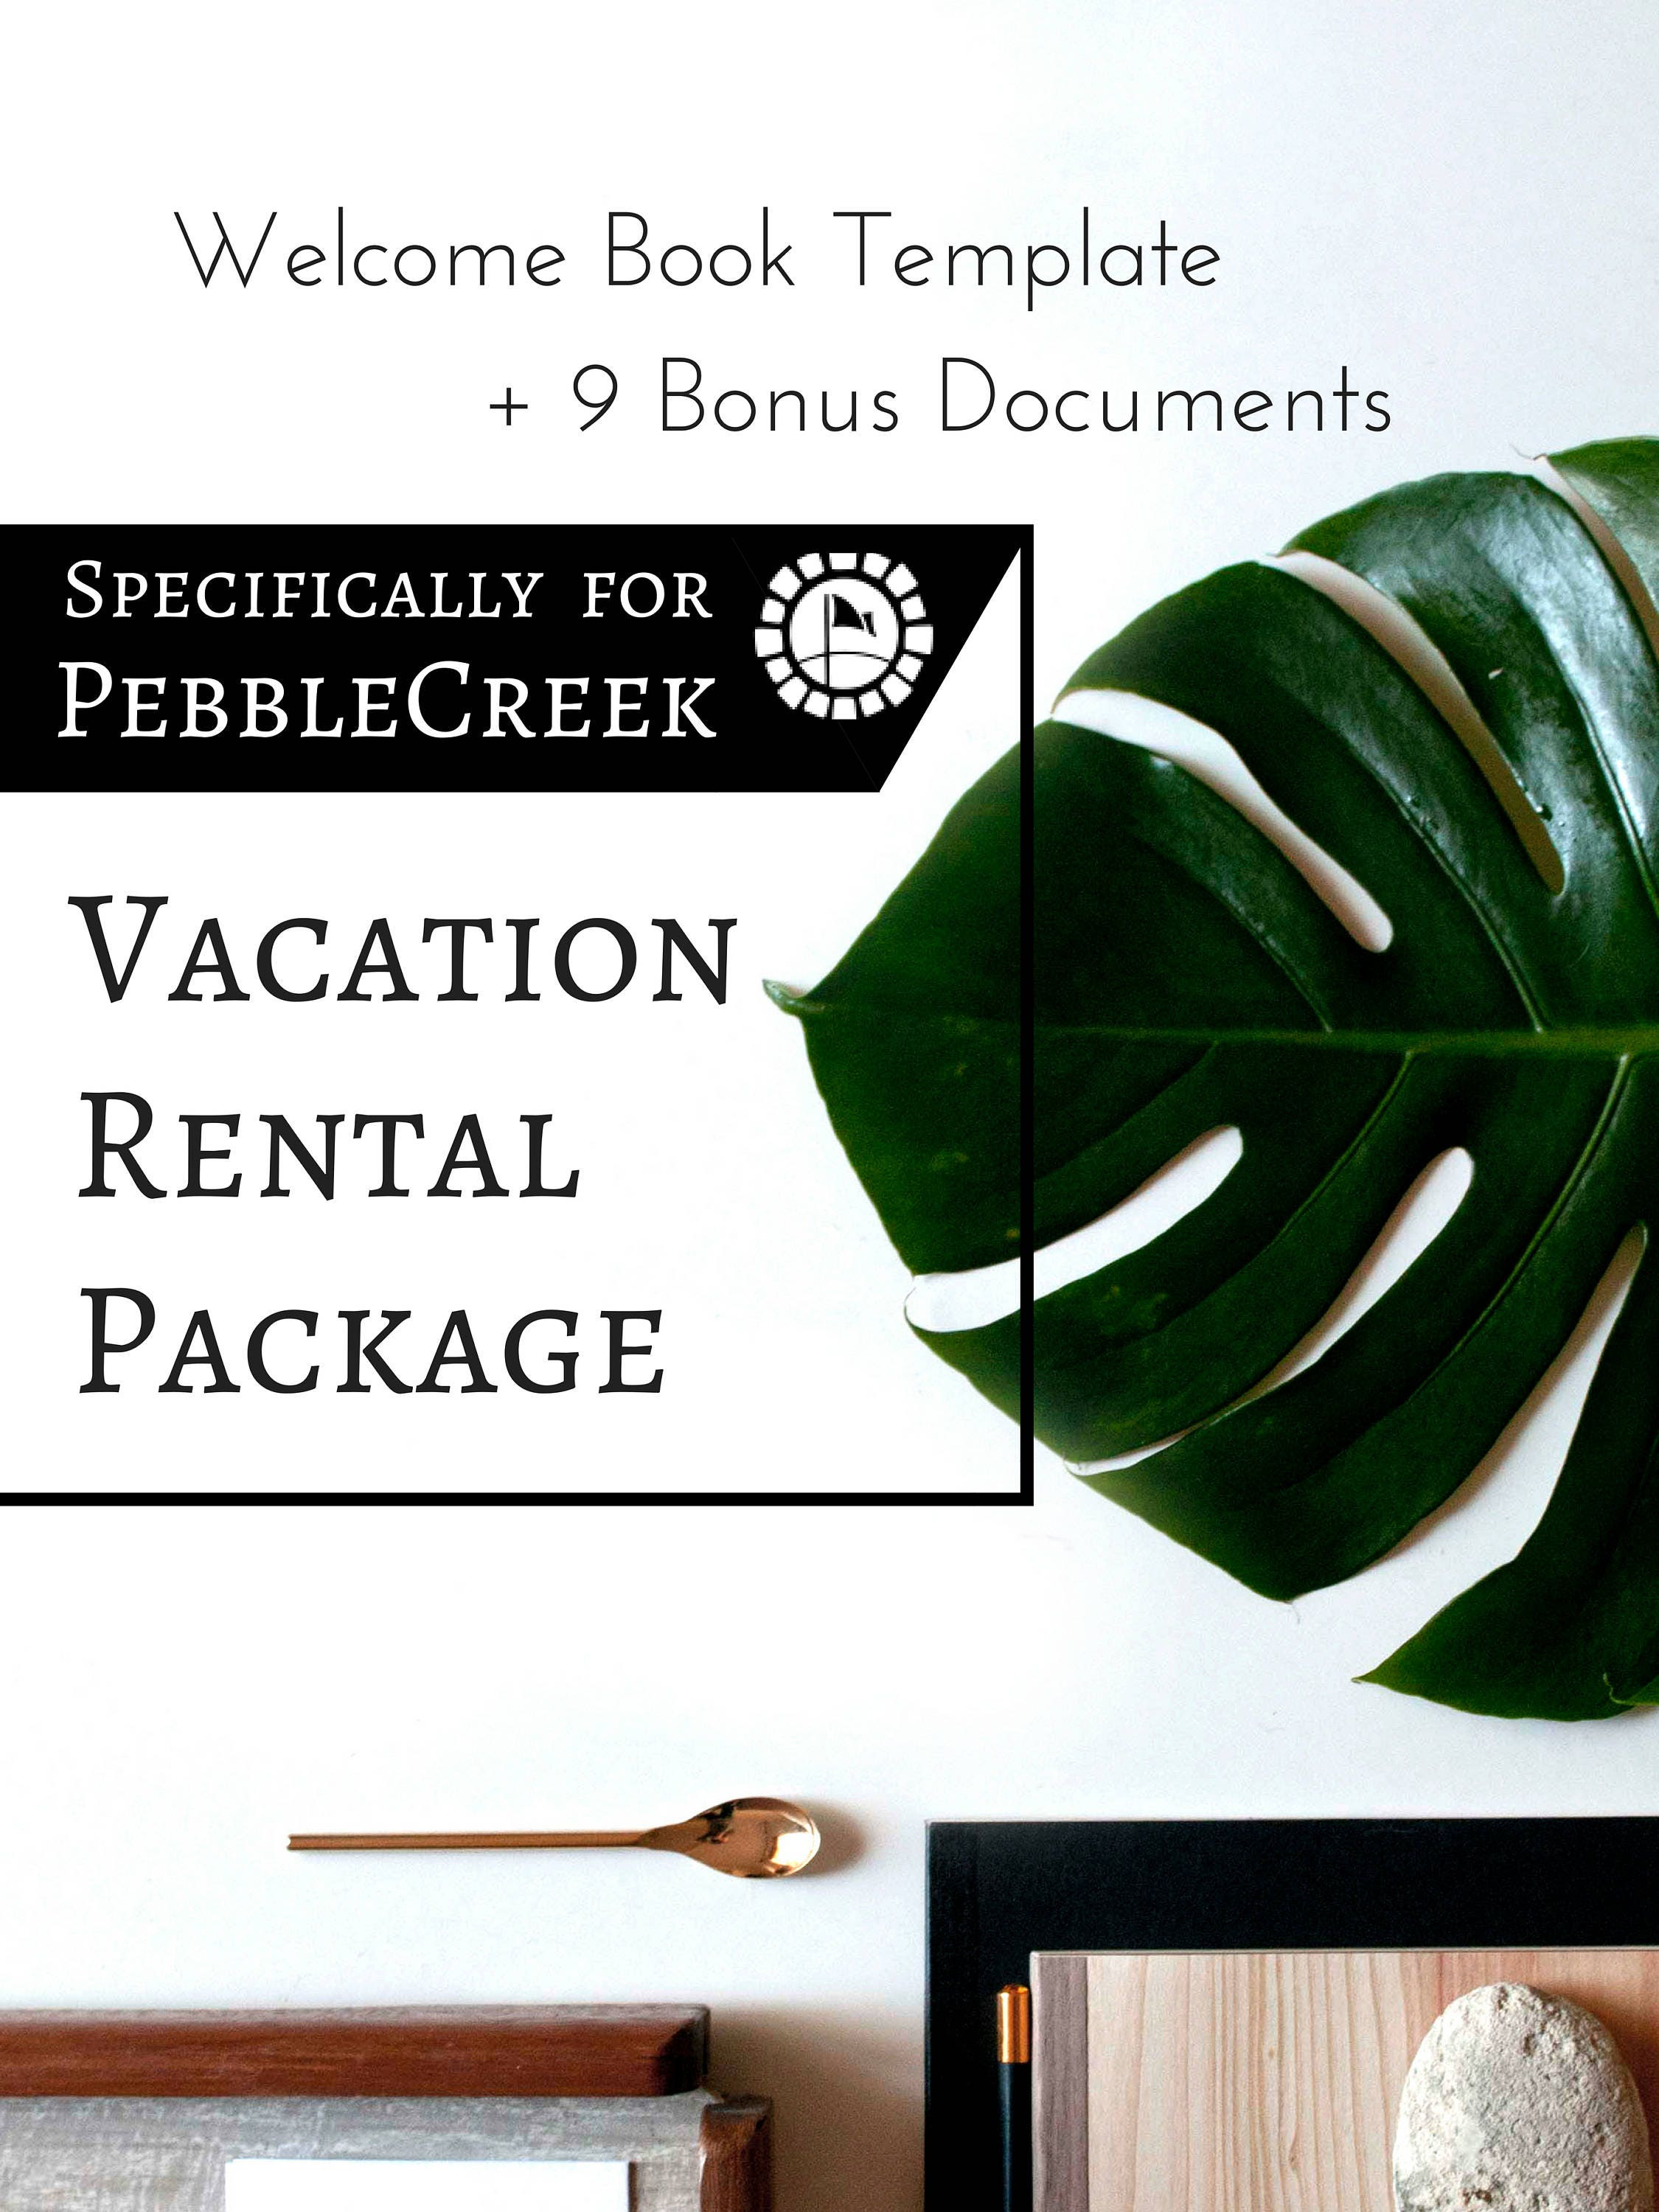 10 item package vacation rental welcome book template for. Black Bedroom Furniture Sets. Home Design Ideas